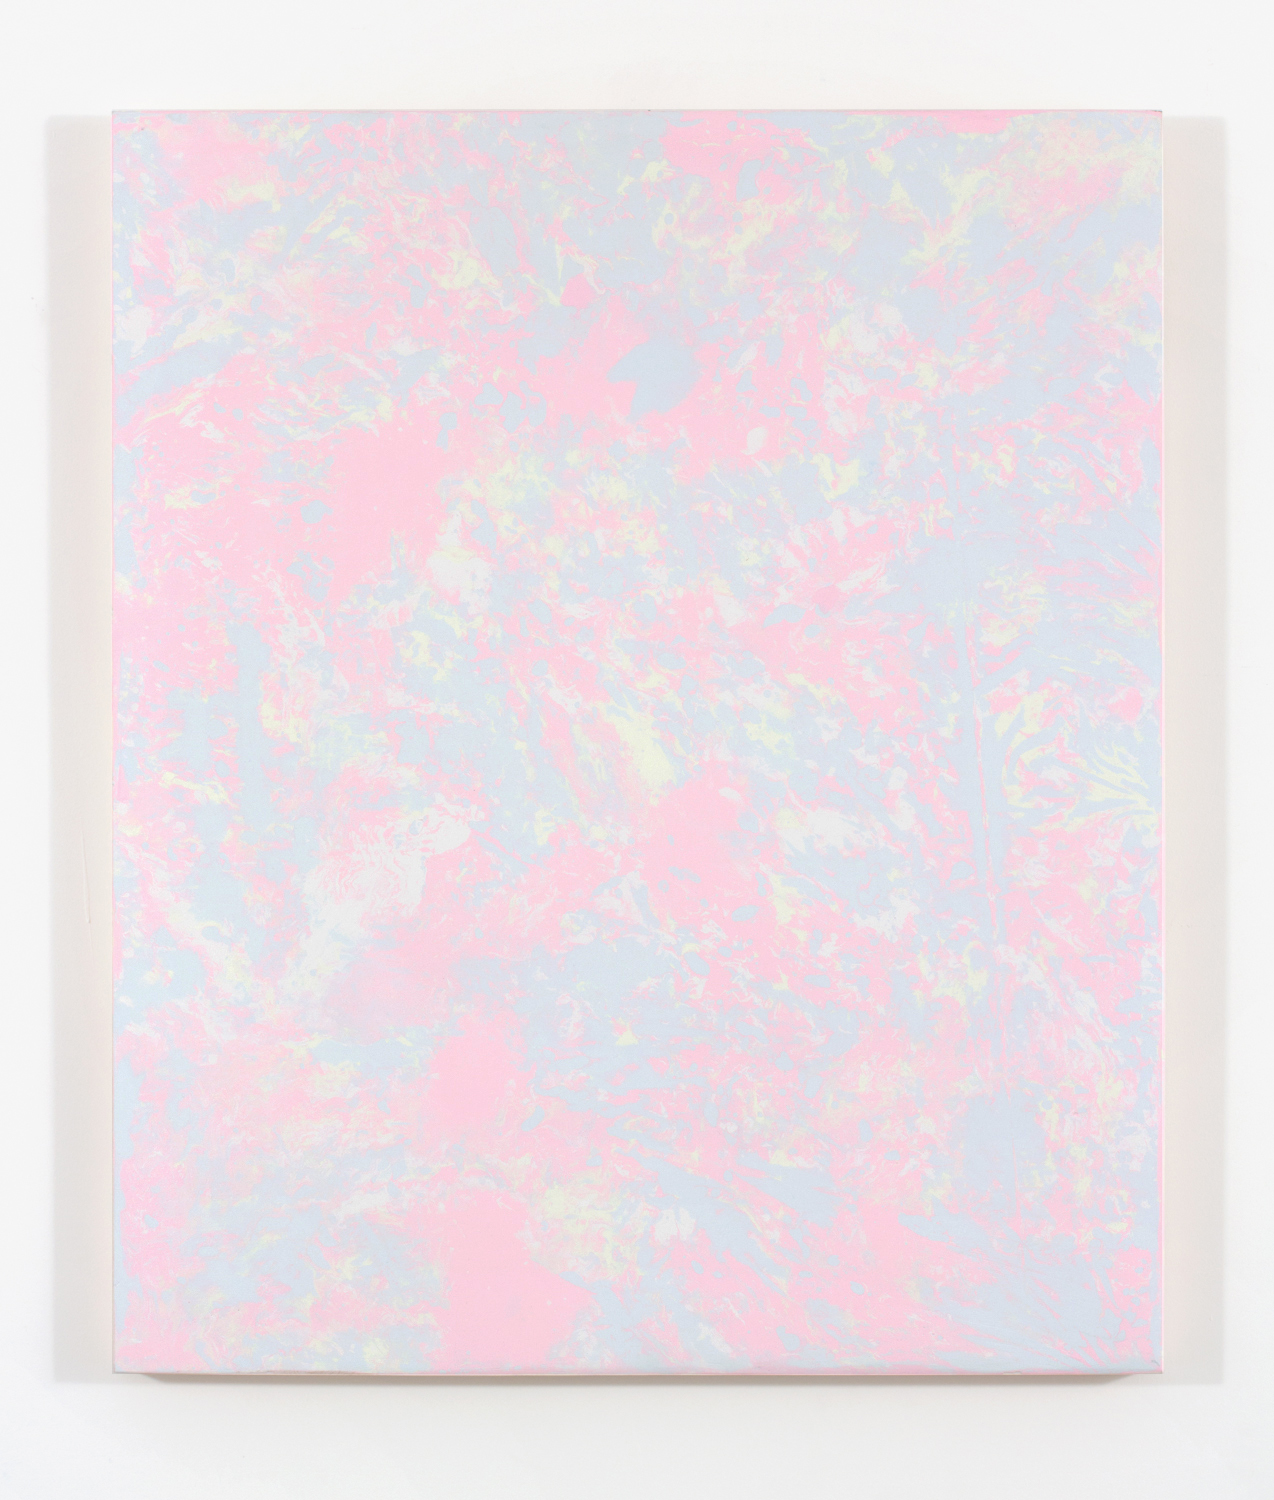 "Pierre Julien,  Cotton Candy , 2015, plaster and acrylique on wood, 36"" x 30"" ( 91 x 76 cm)"